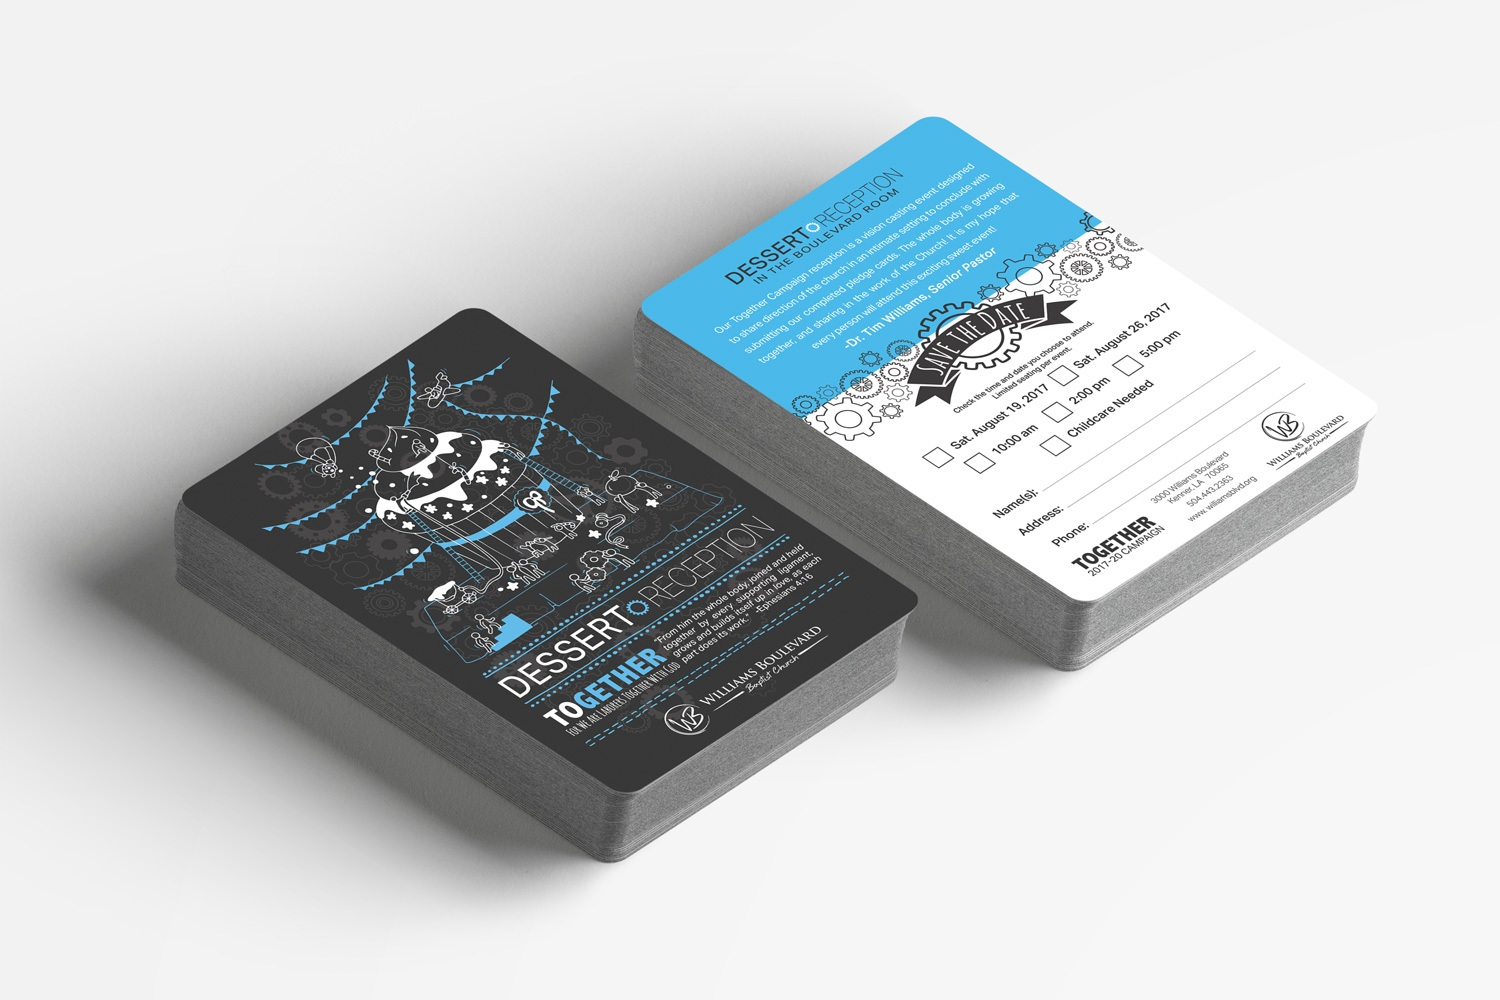 church invite cards for capital campaign stewardship materials